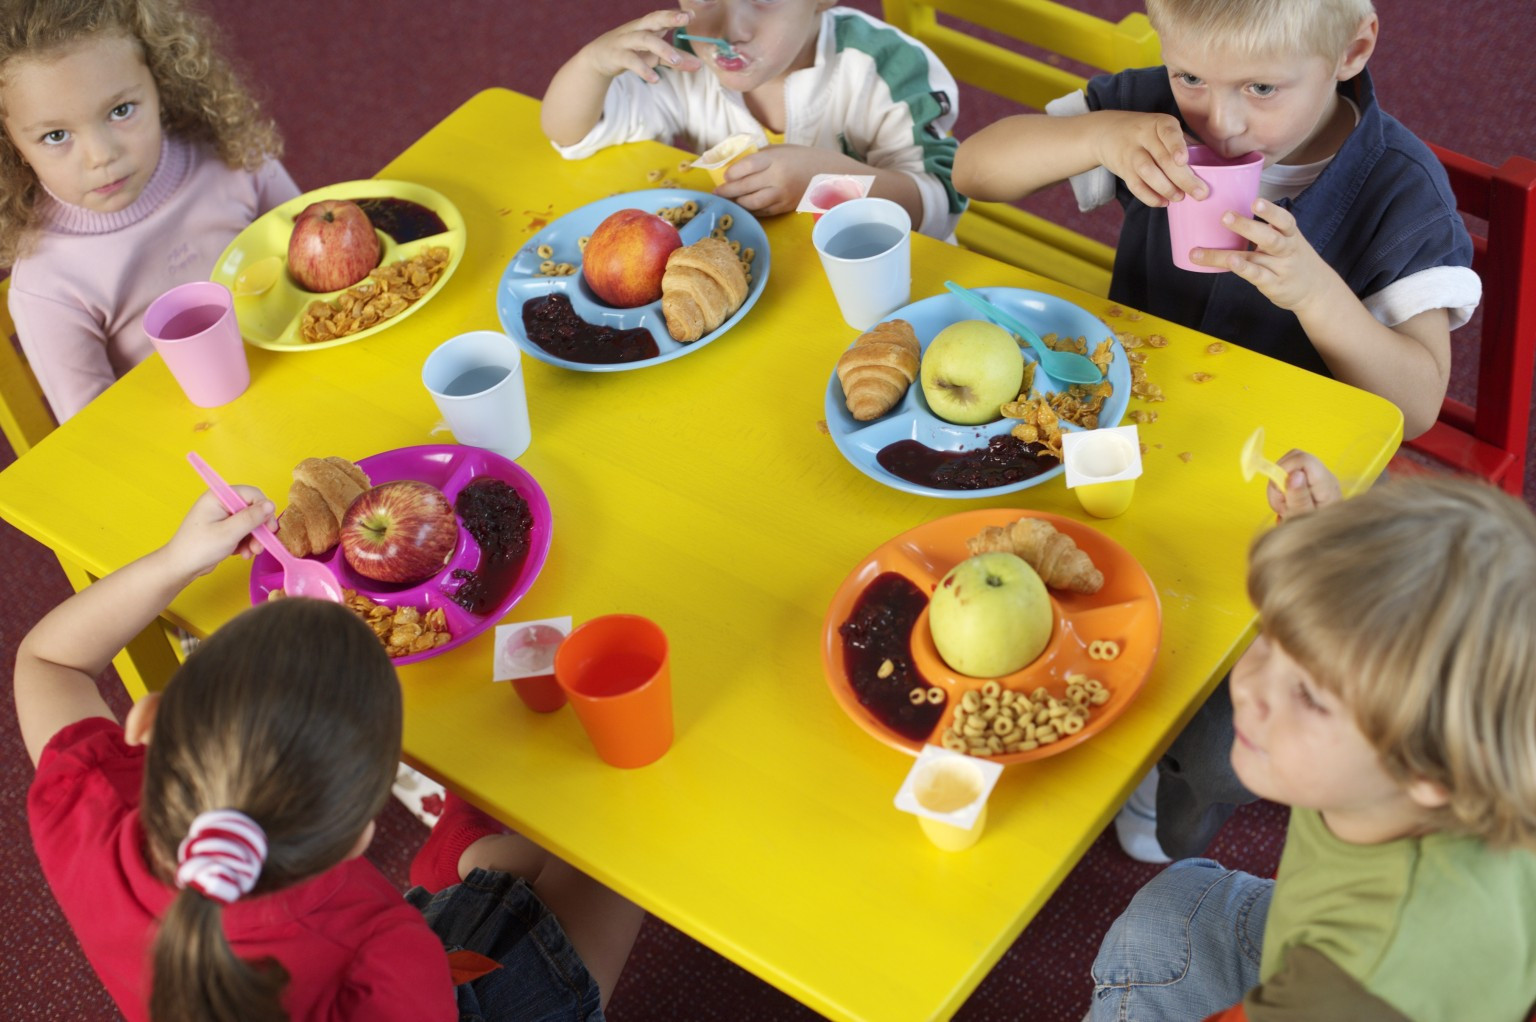 Kids Eating Breakfast  Why You Should Support School Breakfast Even If Your Kid